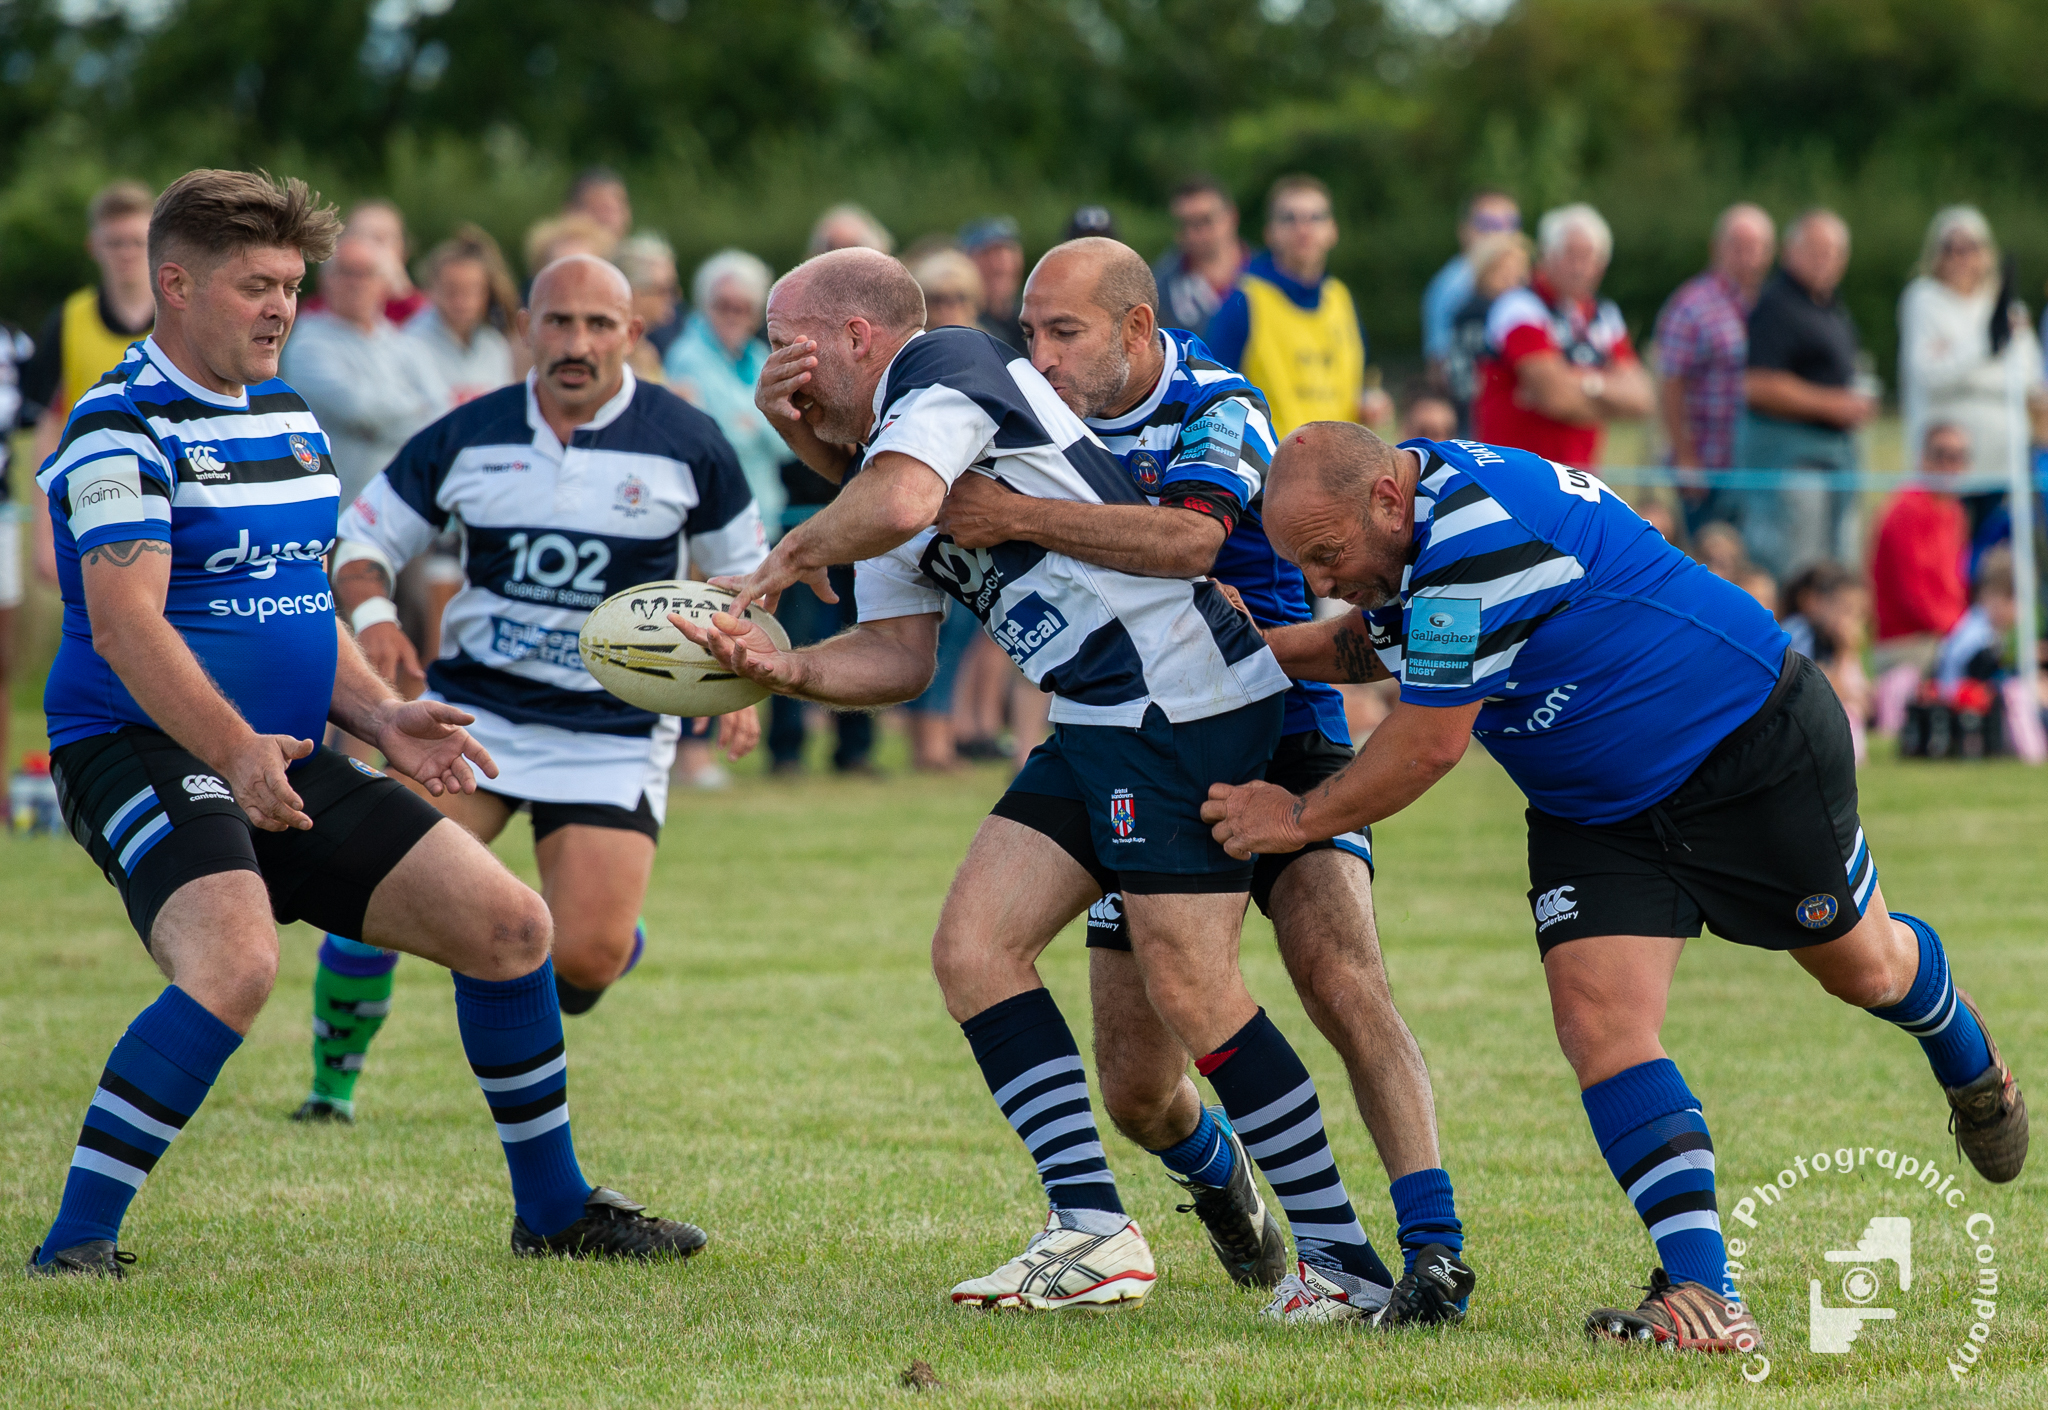 20190901 Tractots and Rugby_0222.jpg